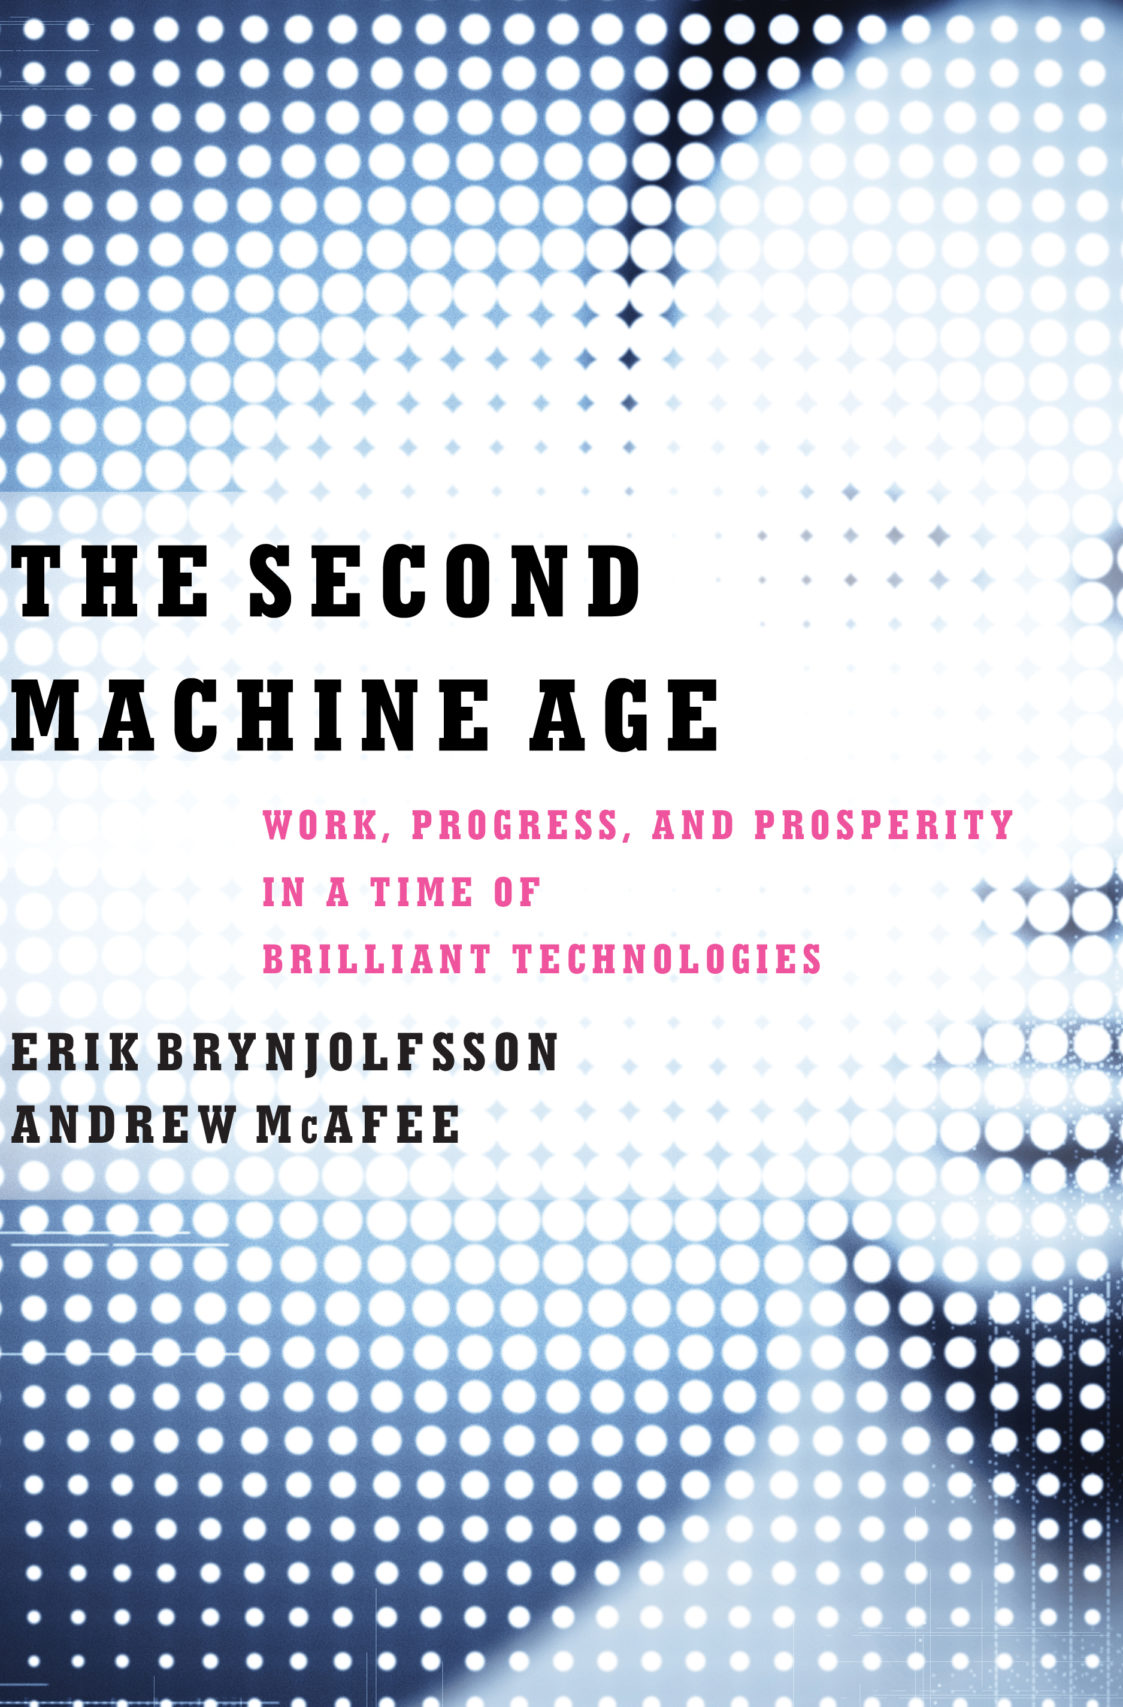 The Second Machine Age by Erik Brynjolfsson and Andrew McAfee